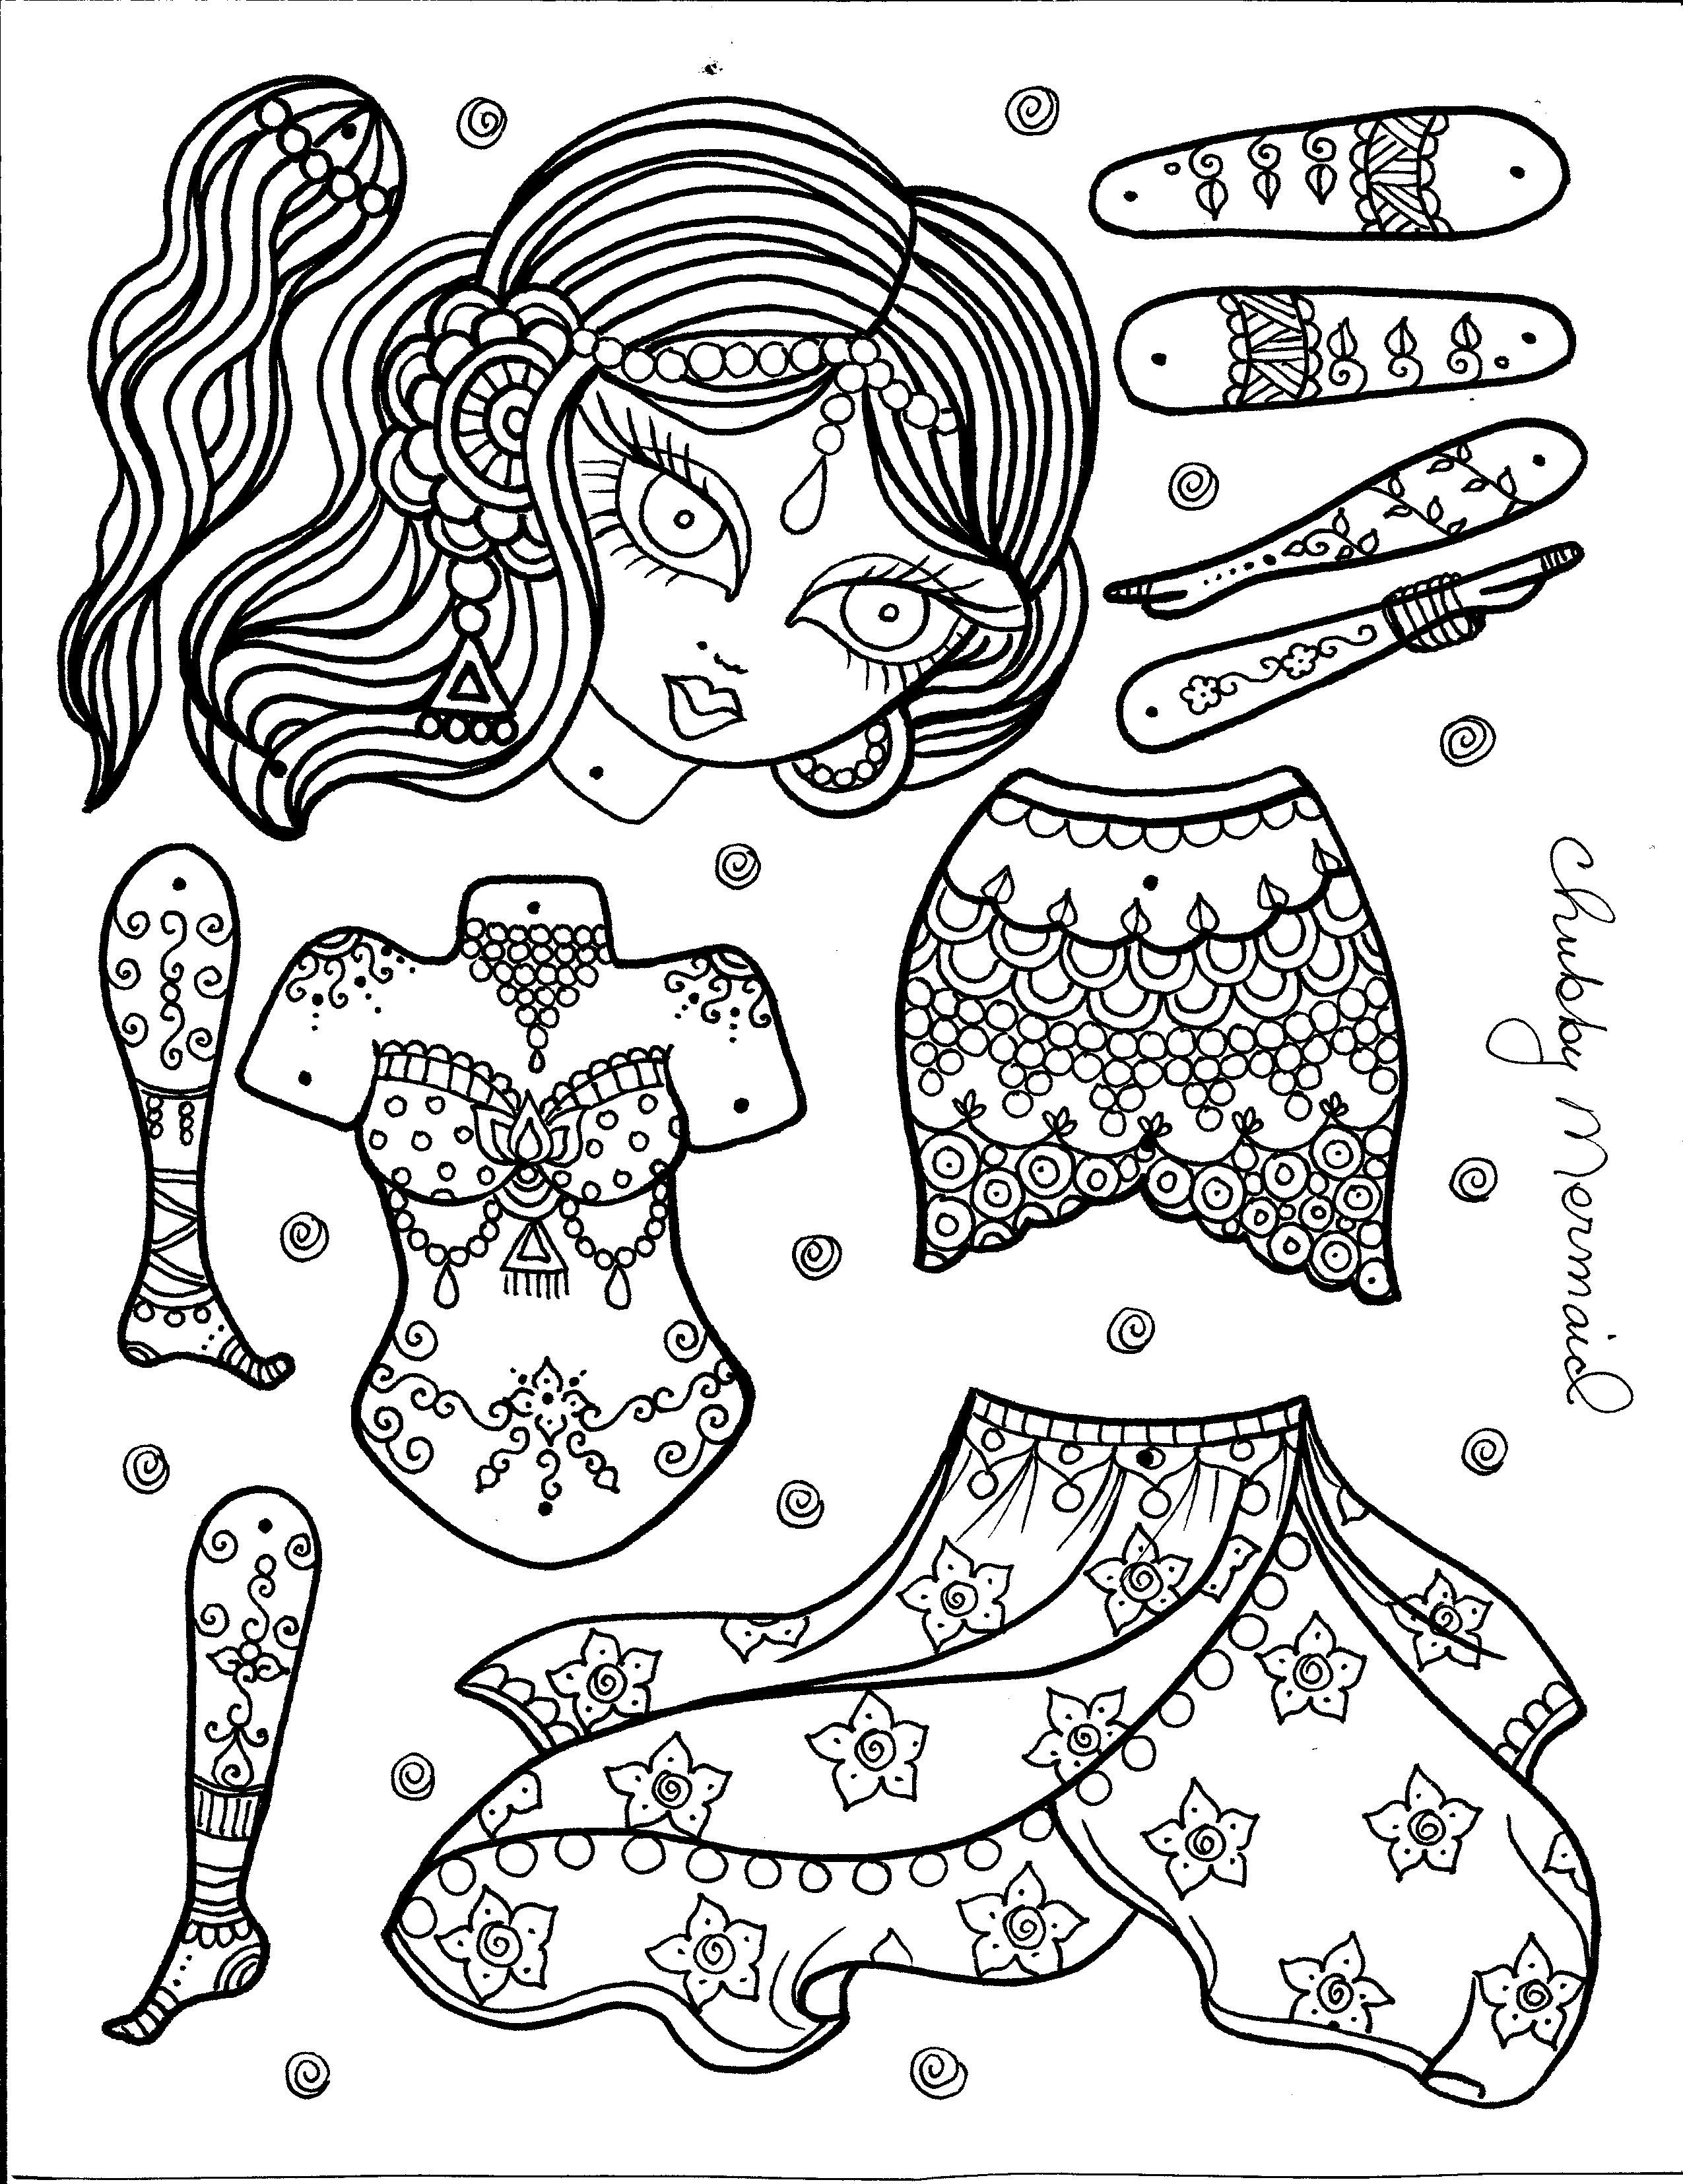 Belly Dancer Paper Doll Art You Color | De todo reciclados ...